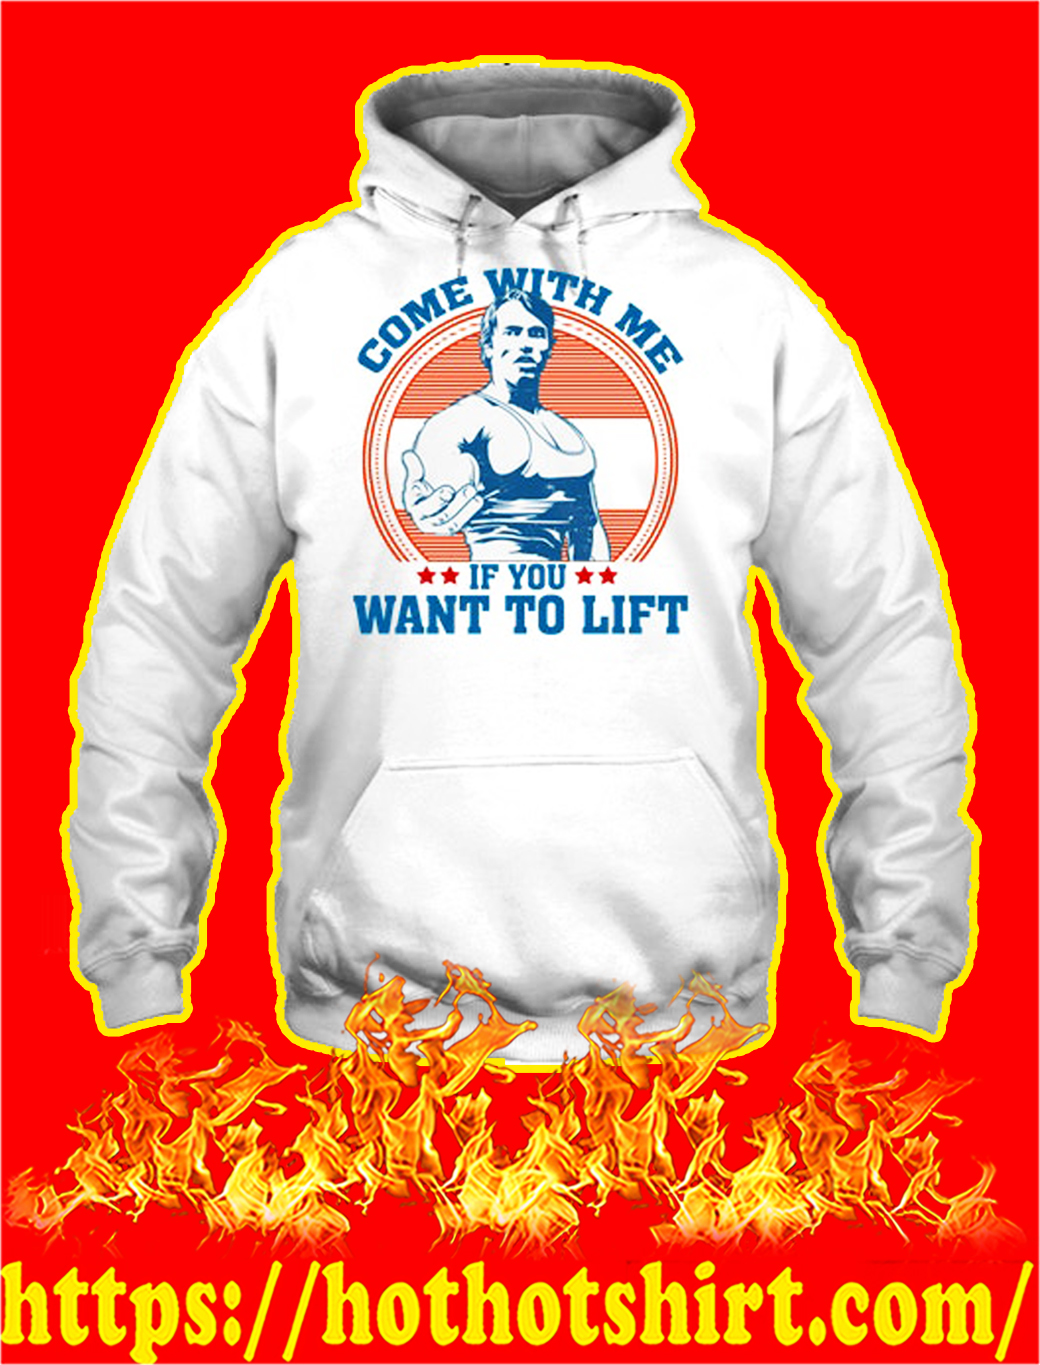 Come with me if you want to lift hoodie